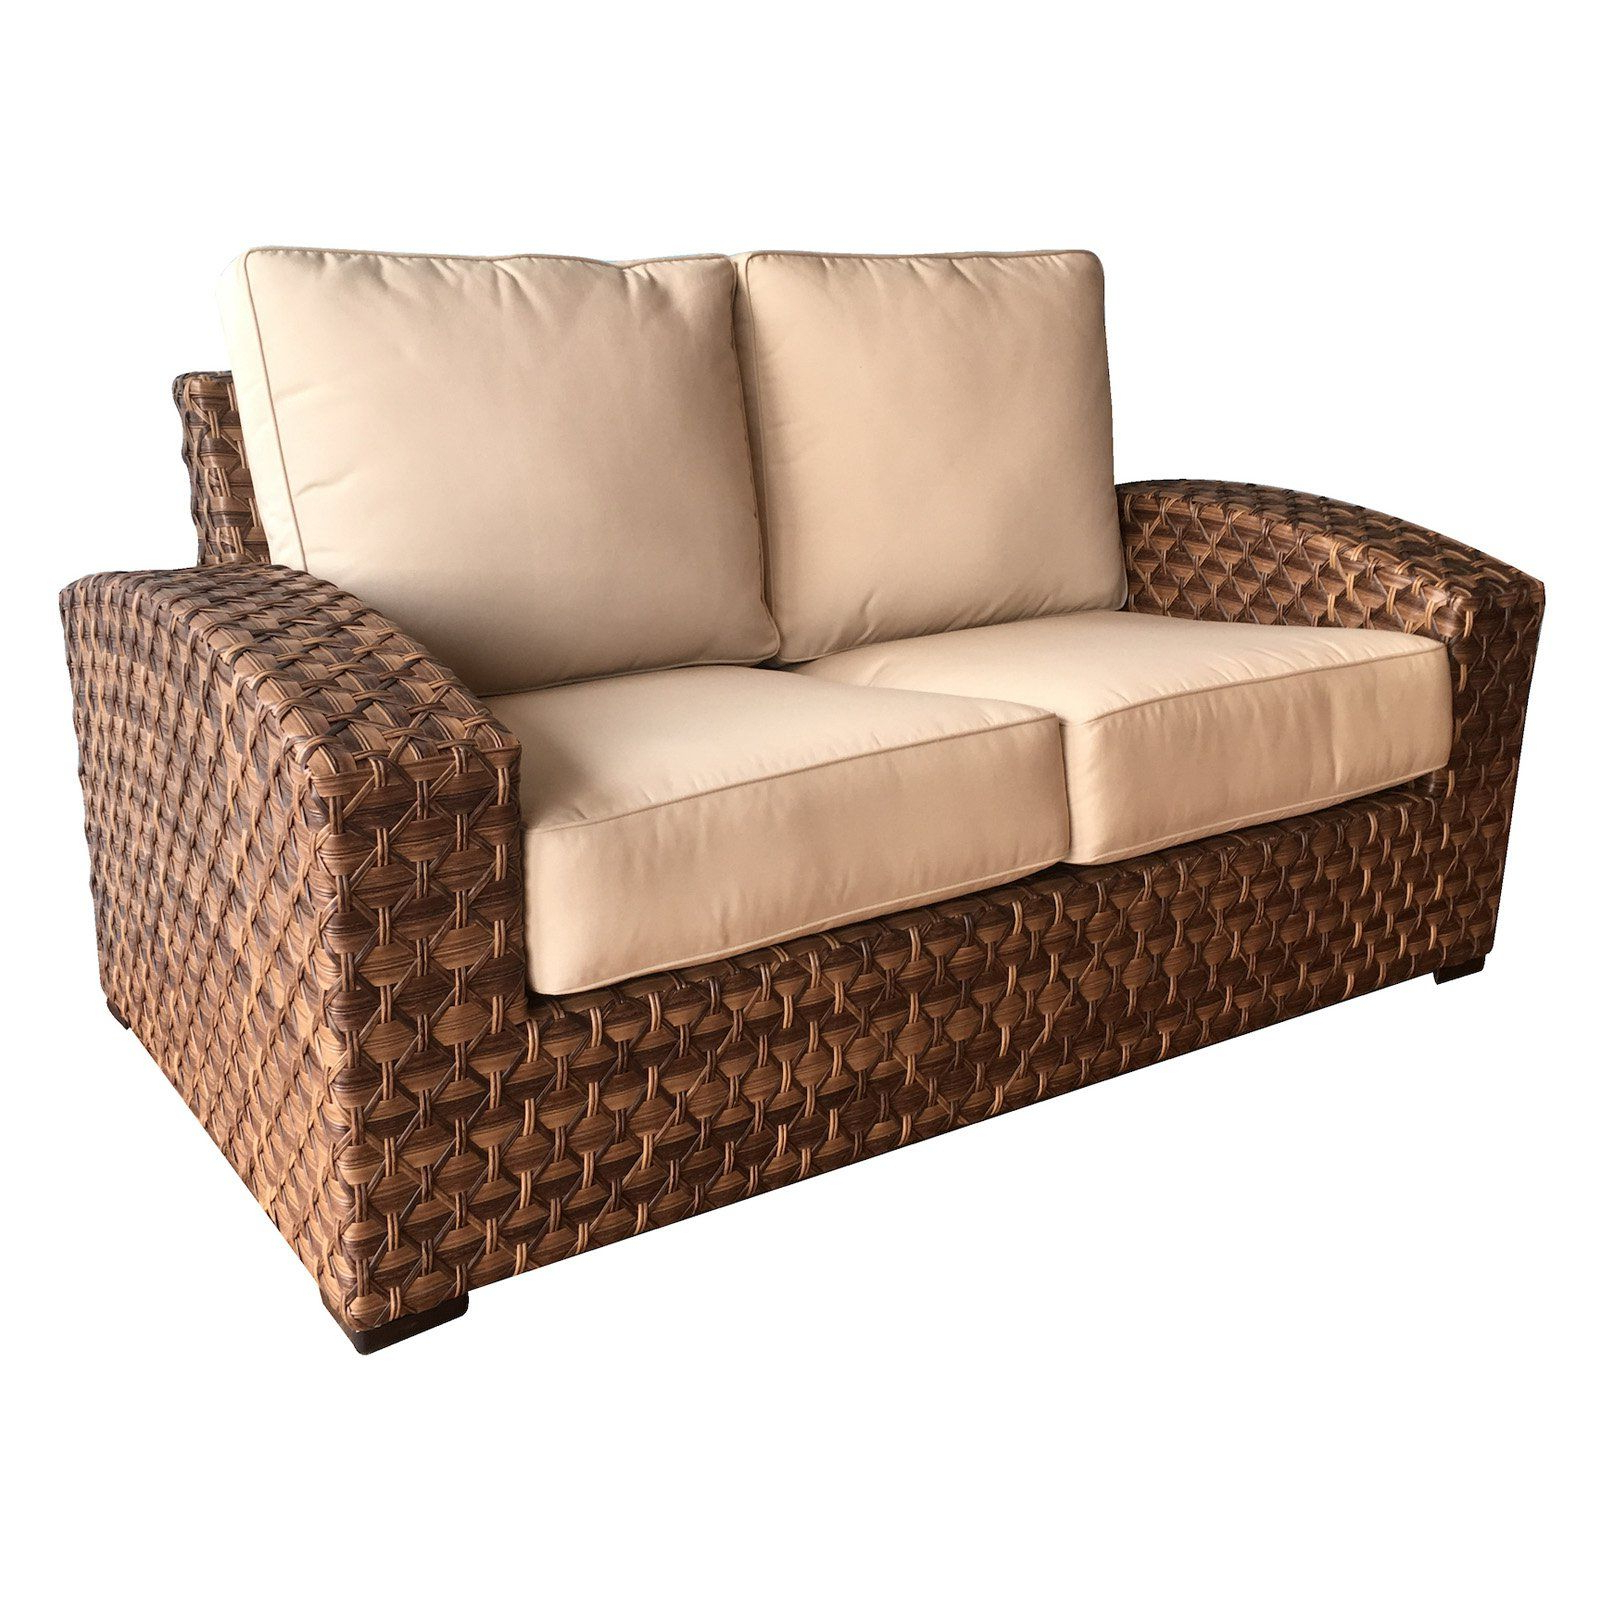 Outdoor Wicker Paradise Westbury Loveseat With Sunbrella Intended For Most Current Lawson Wicker Loveseats With Cushions (Gallery 25 of 25)